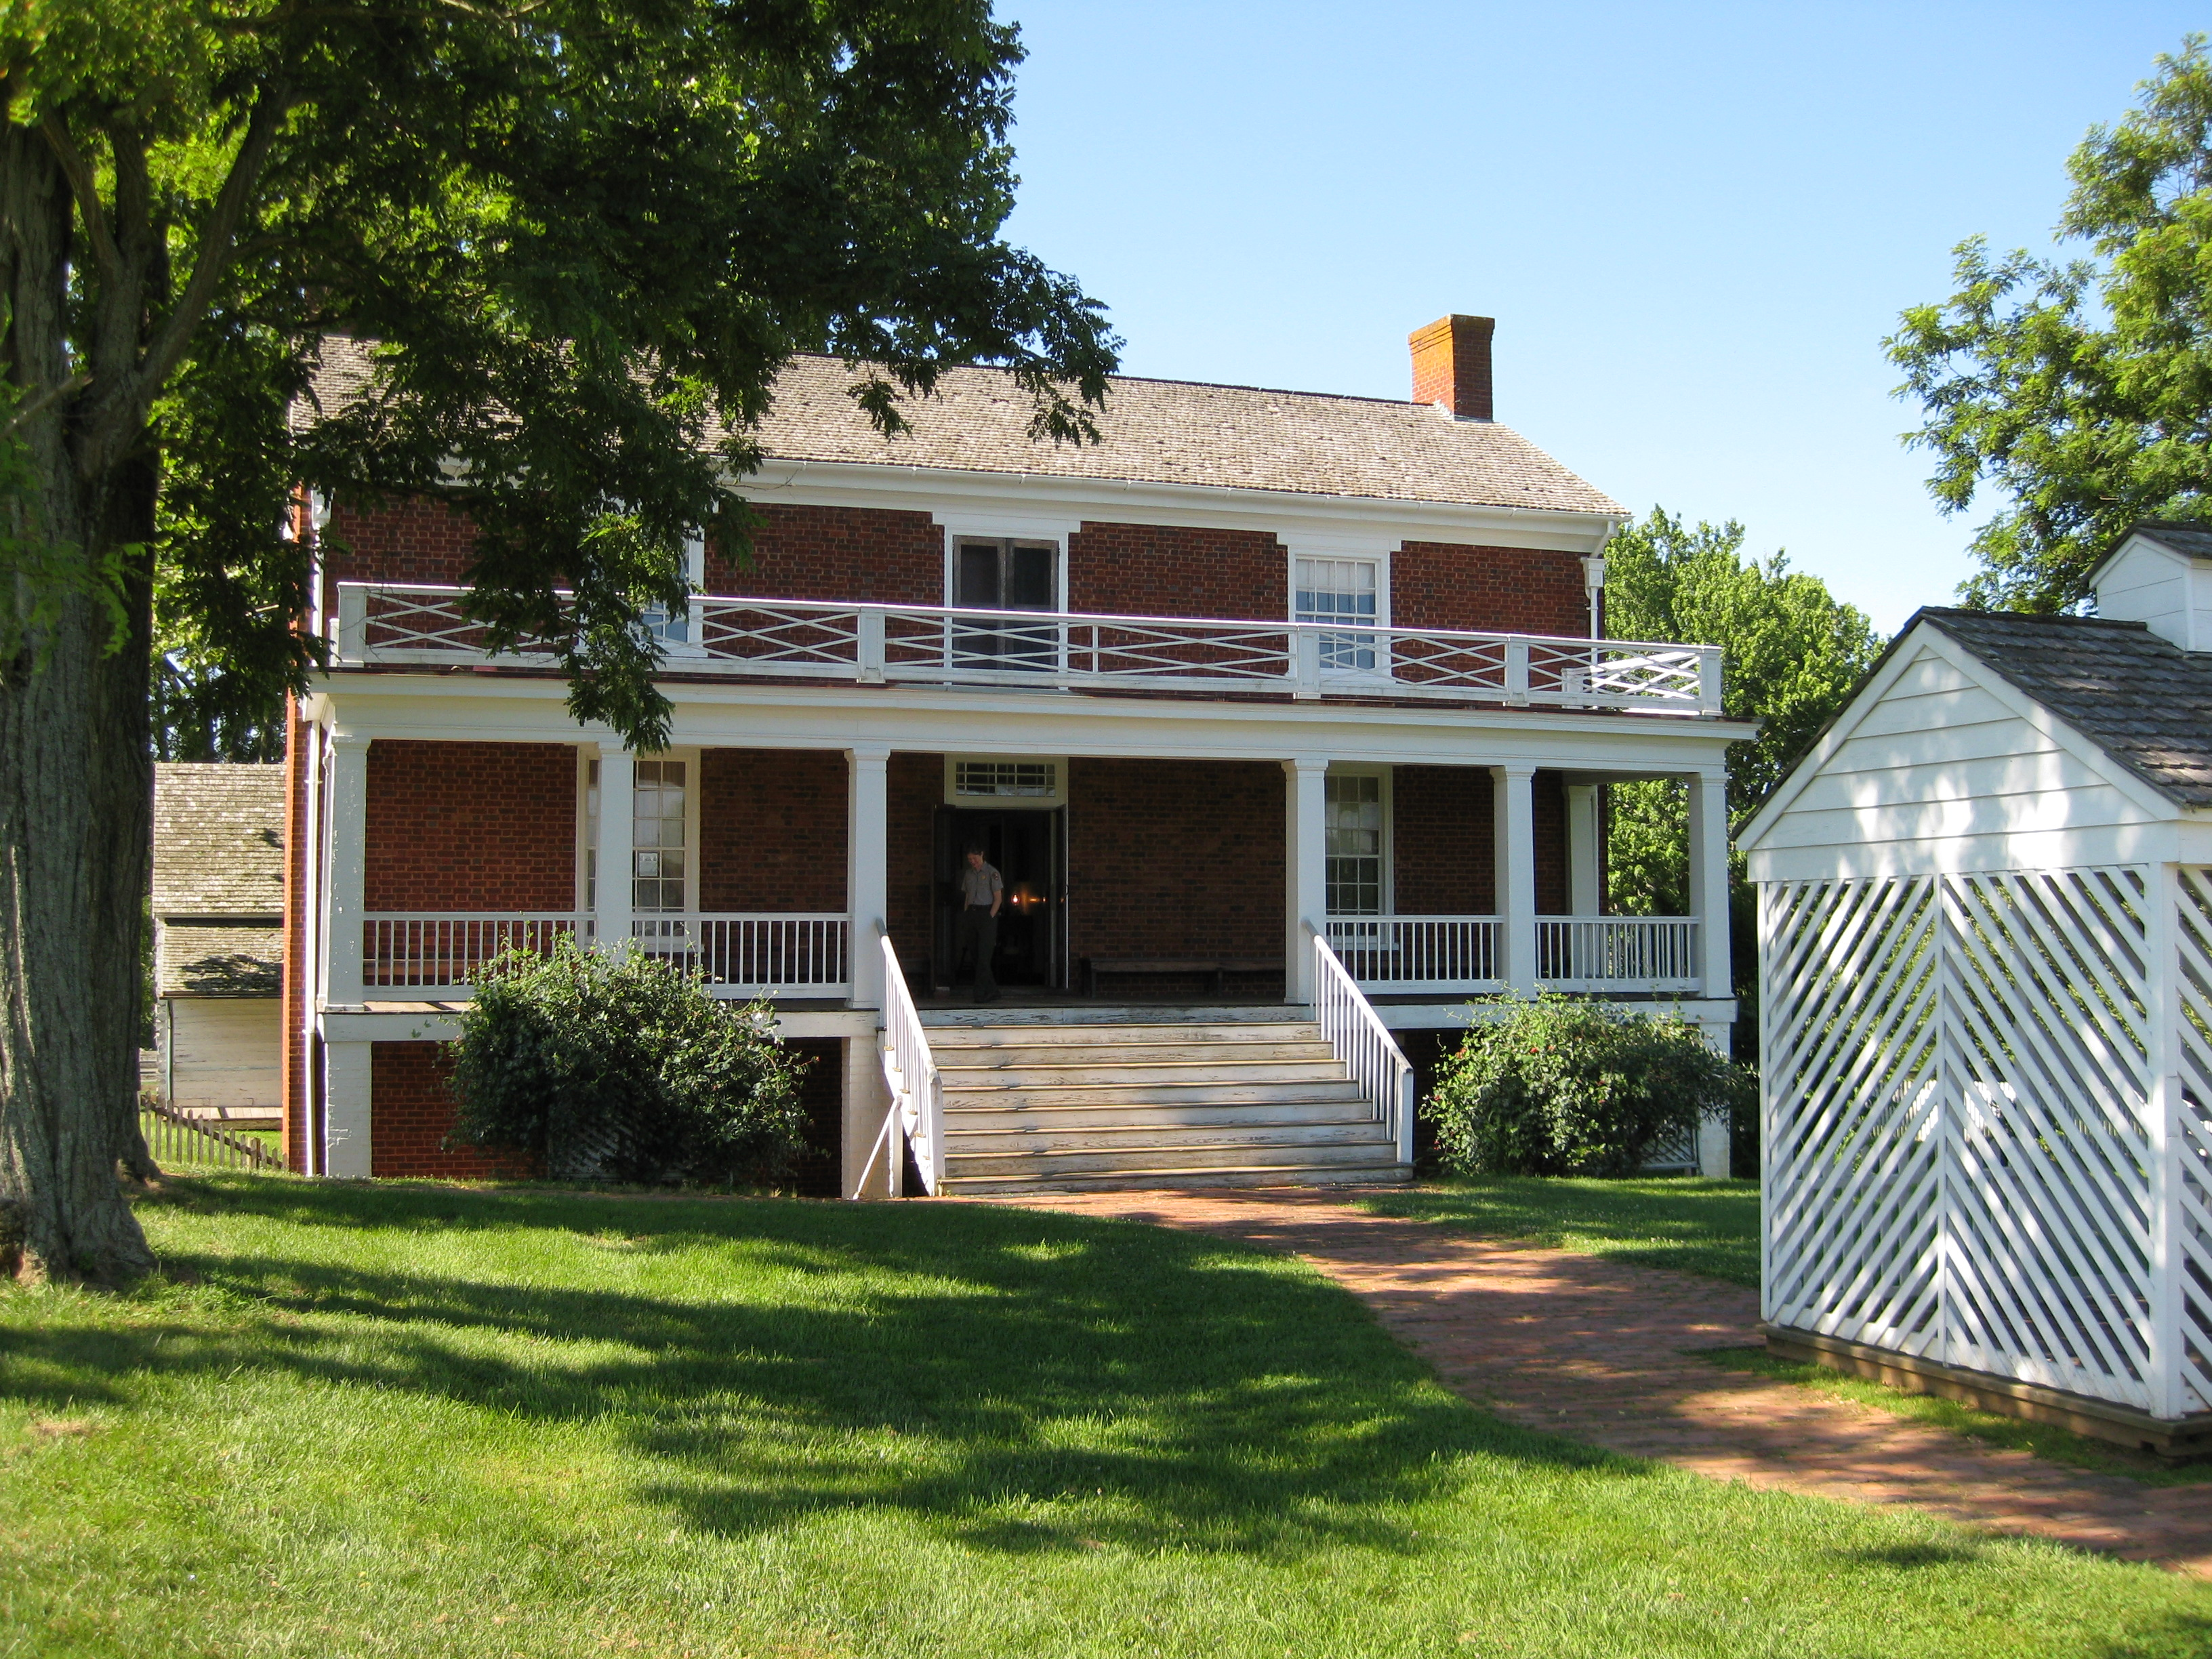 Historic Structures At Appomattox Court House Appomattox Court - Appomattox court house us map